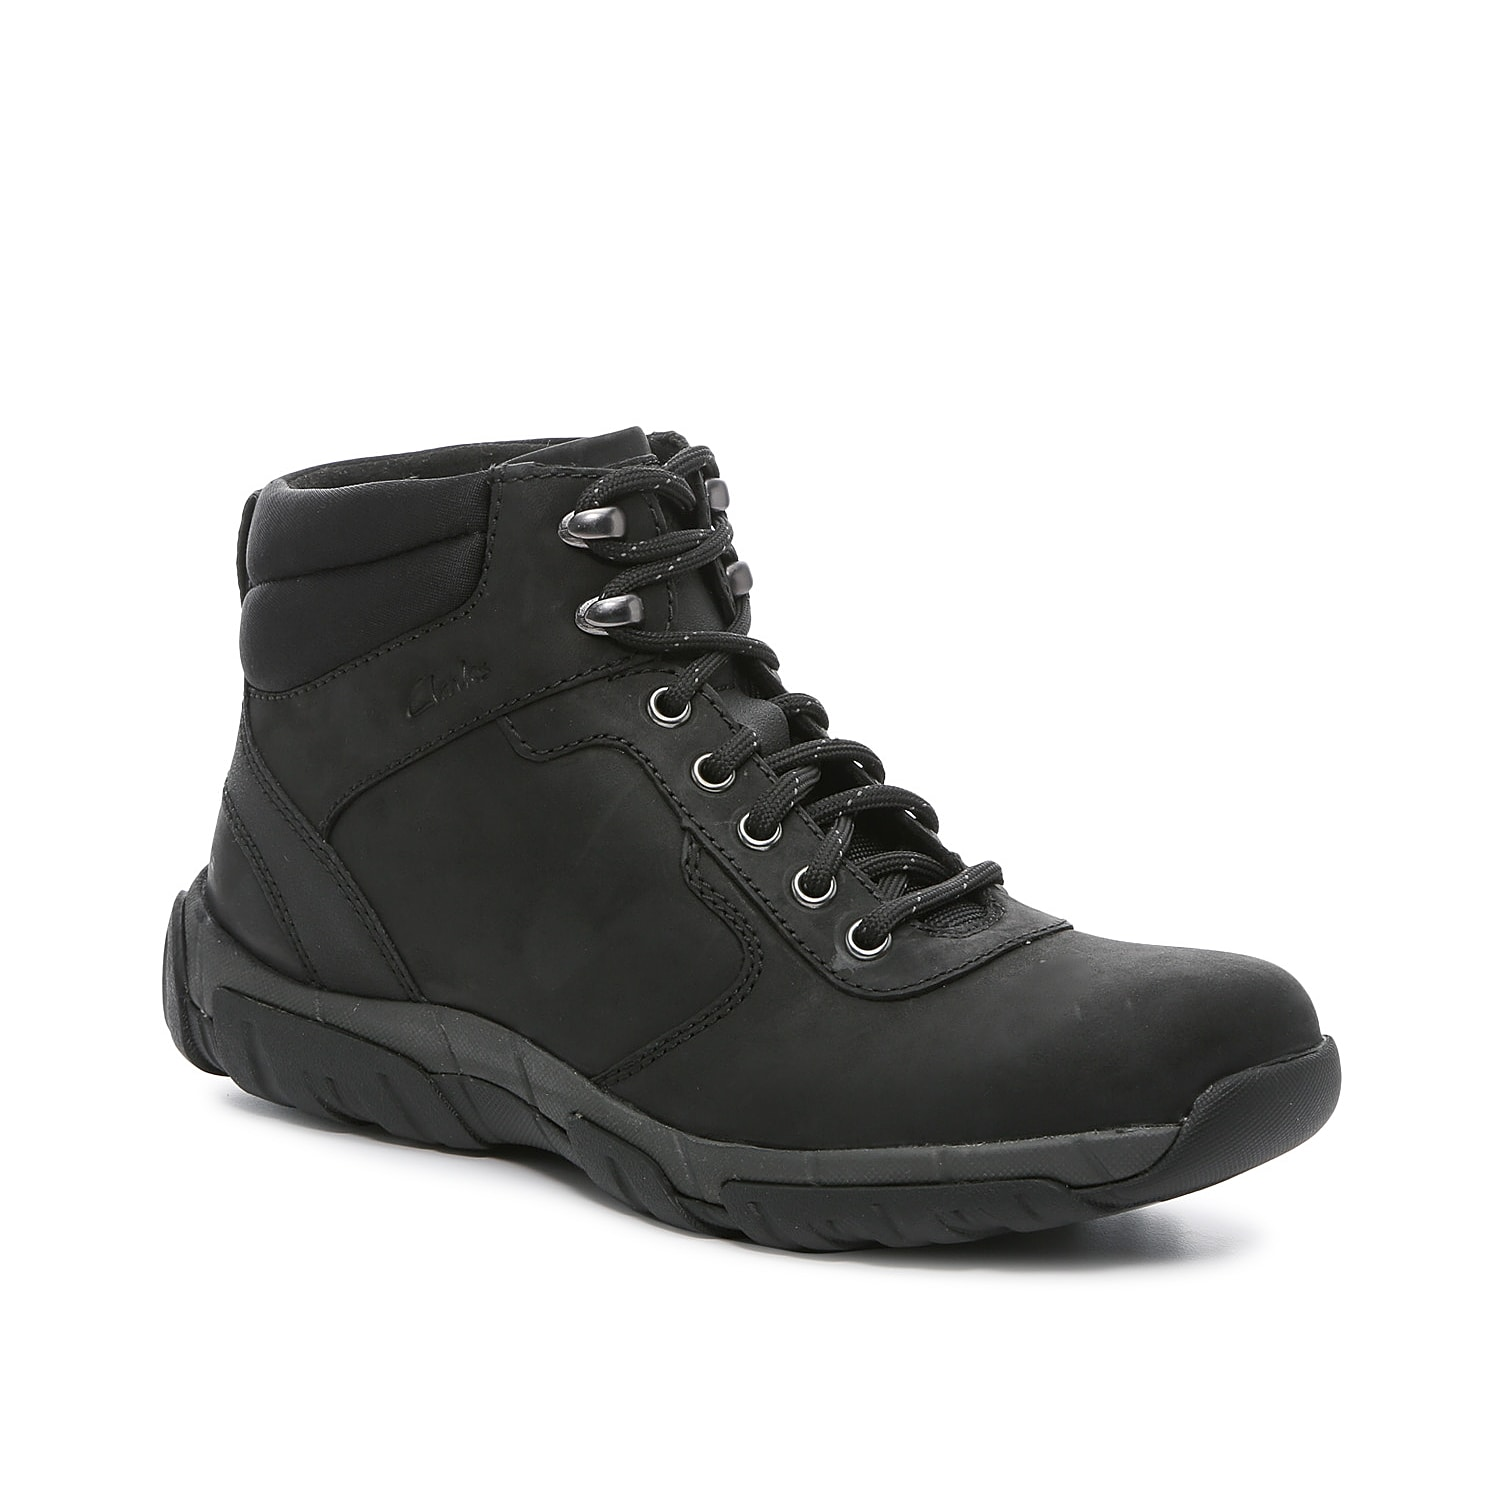 Stay confident with the comfort and style of the Grove hiking boot from Clarks. With a stabilizing, structured design that supports trail walking, this boot helps you stay on your feet with a traction outsole and Extreme Comfort footbed that\\\'s breathable and moisture-wicking. A molded heel cup surrounds the foot.